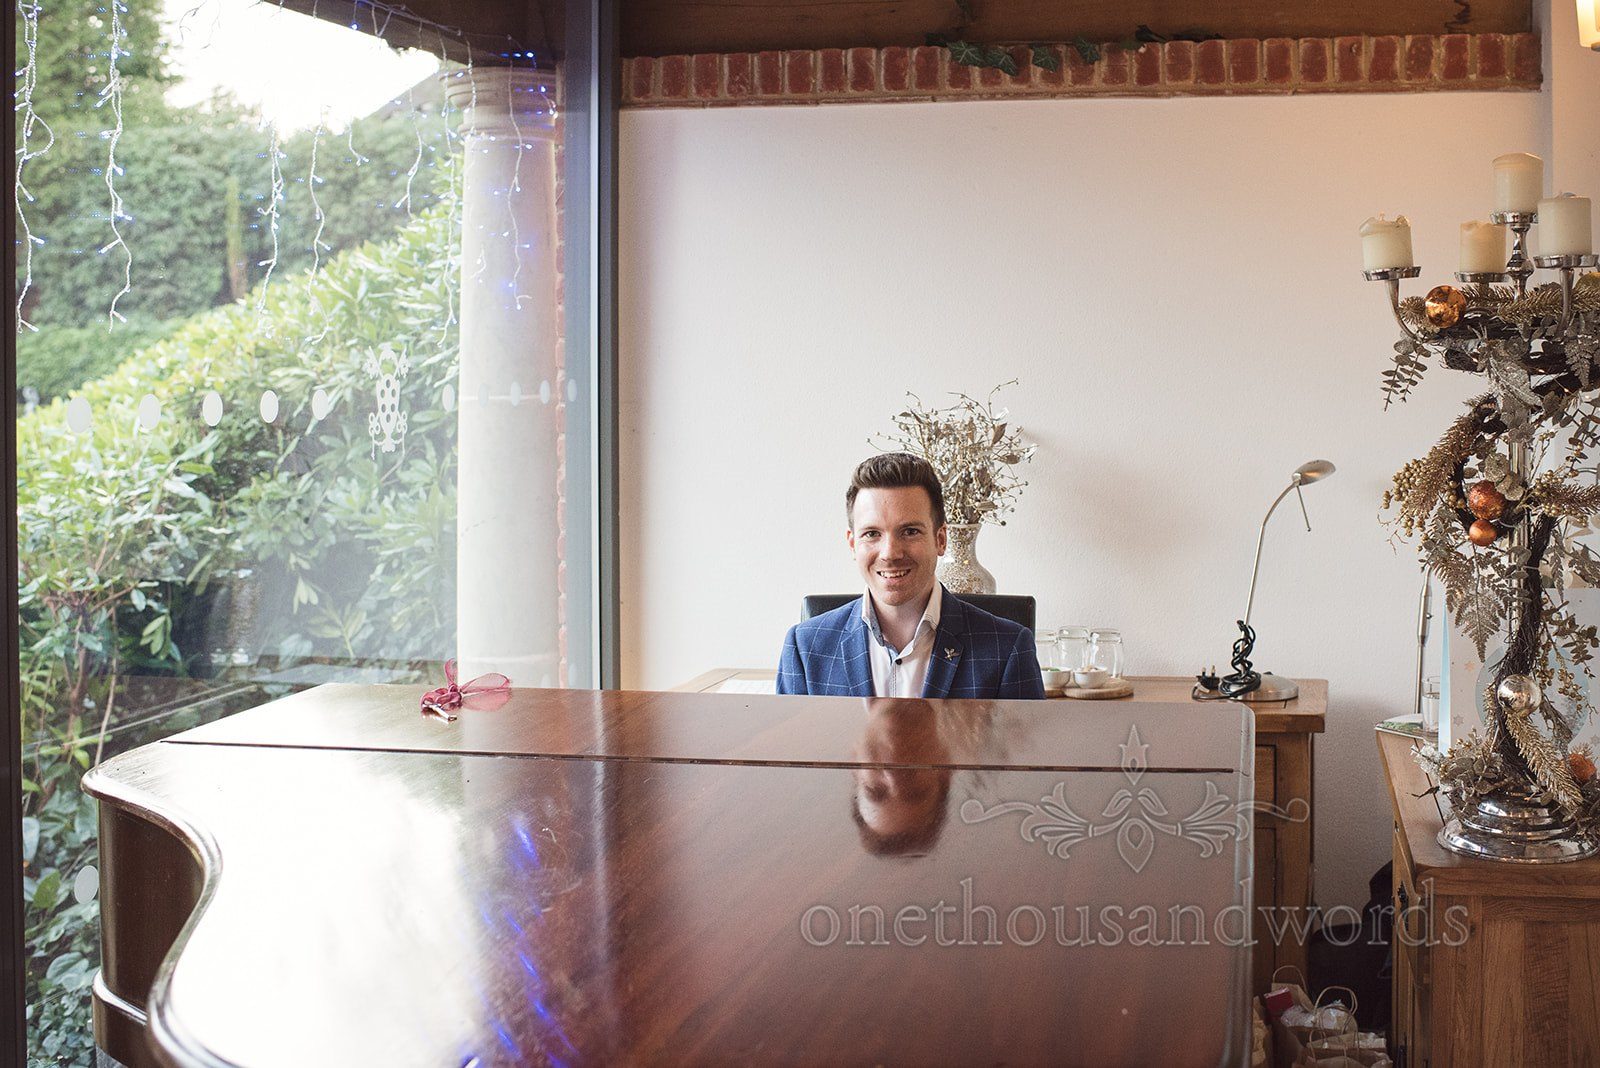 Pianist prepares for Wedding Breakfast Performance - One Thousand Words Photography